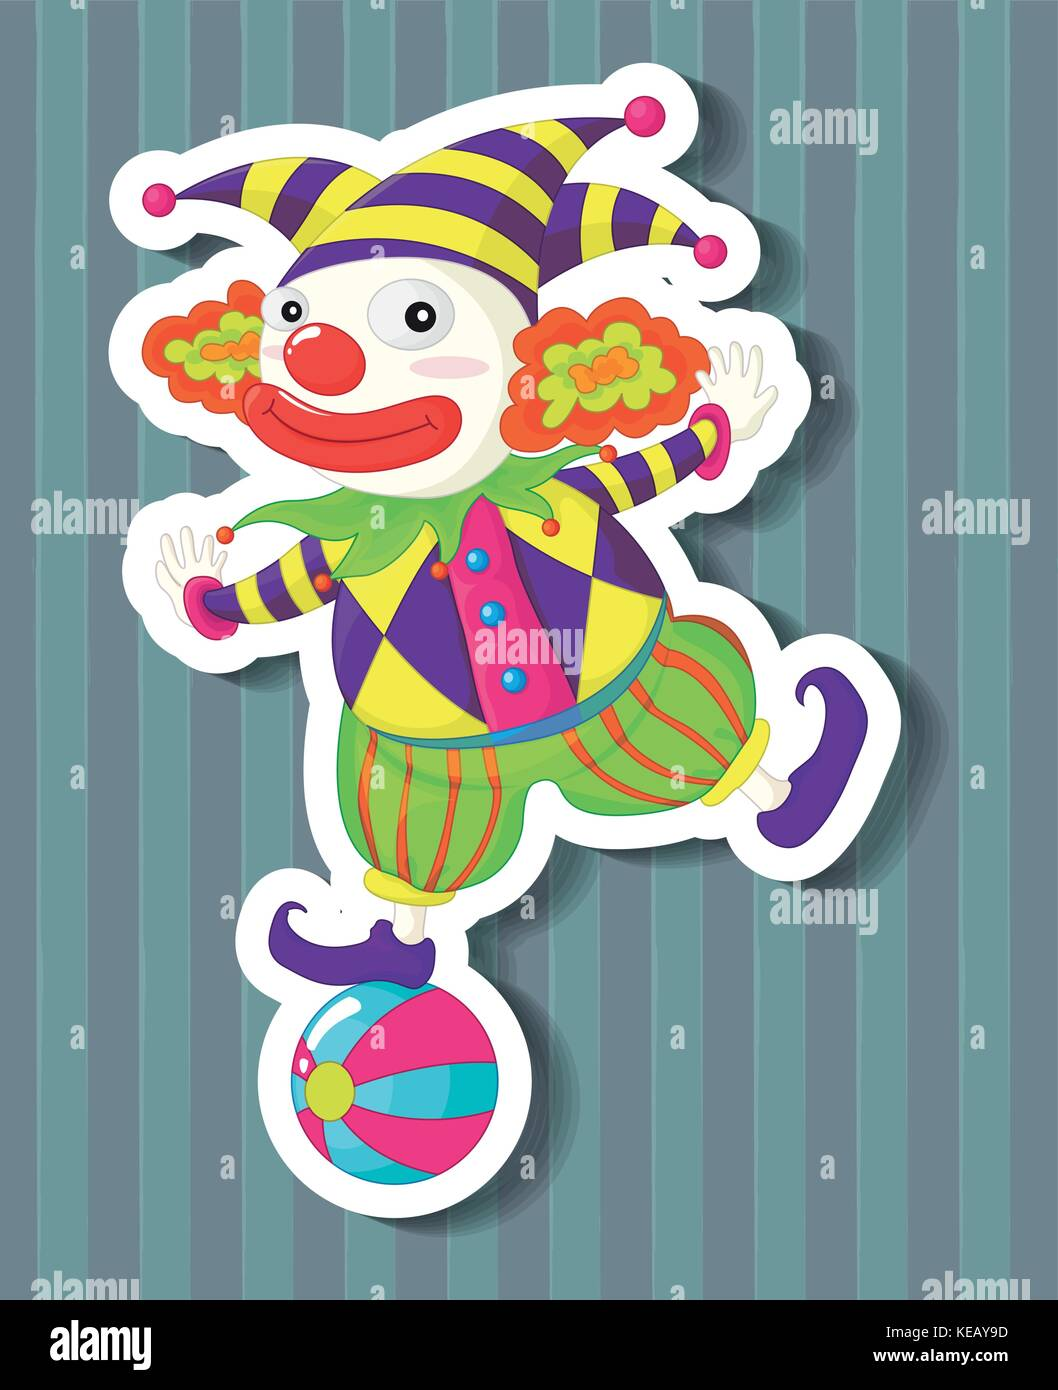 Closeup silly jester standing on a ball - Stock Vector